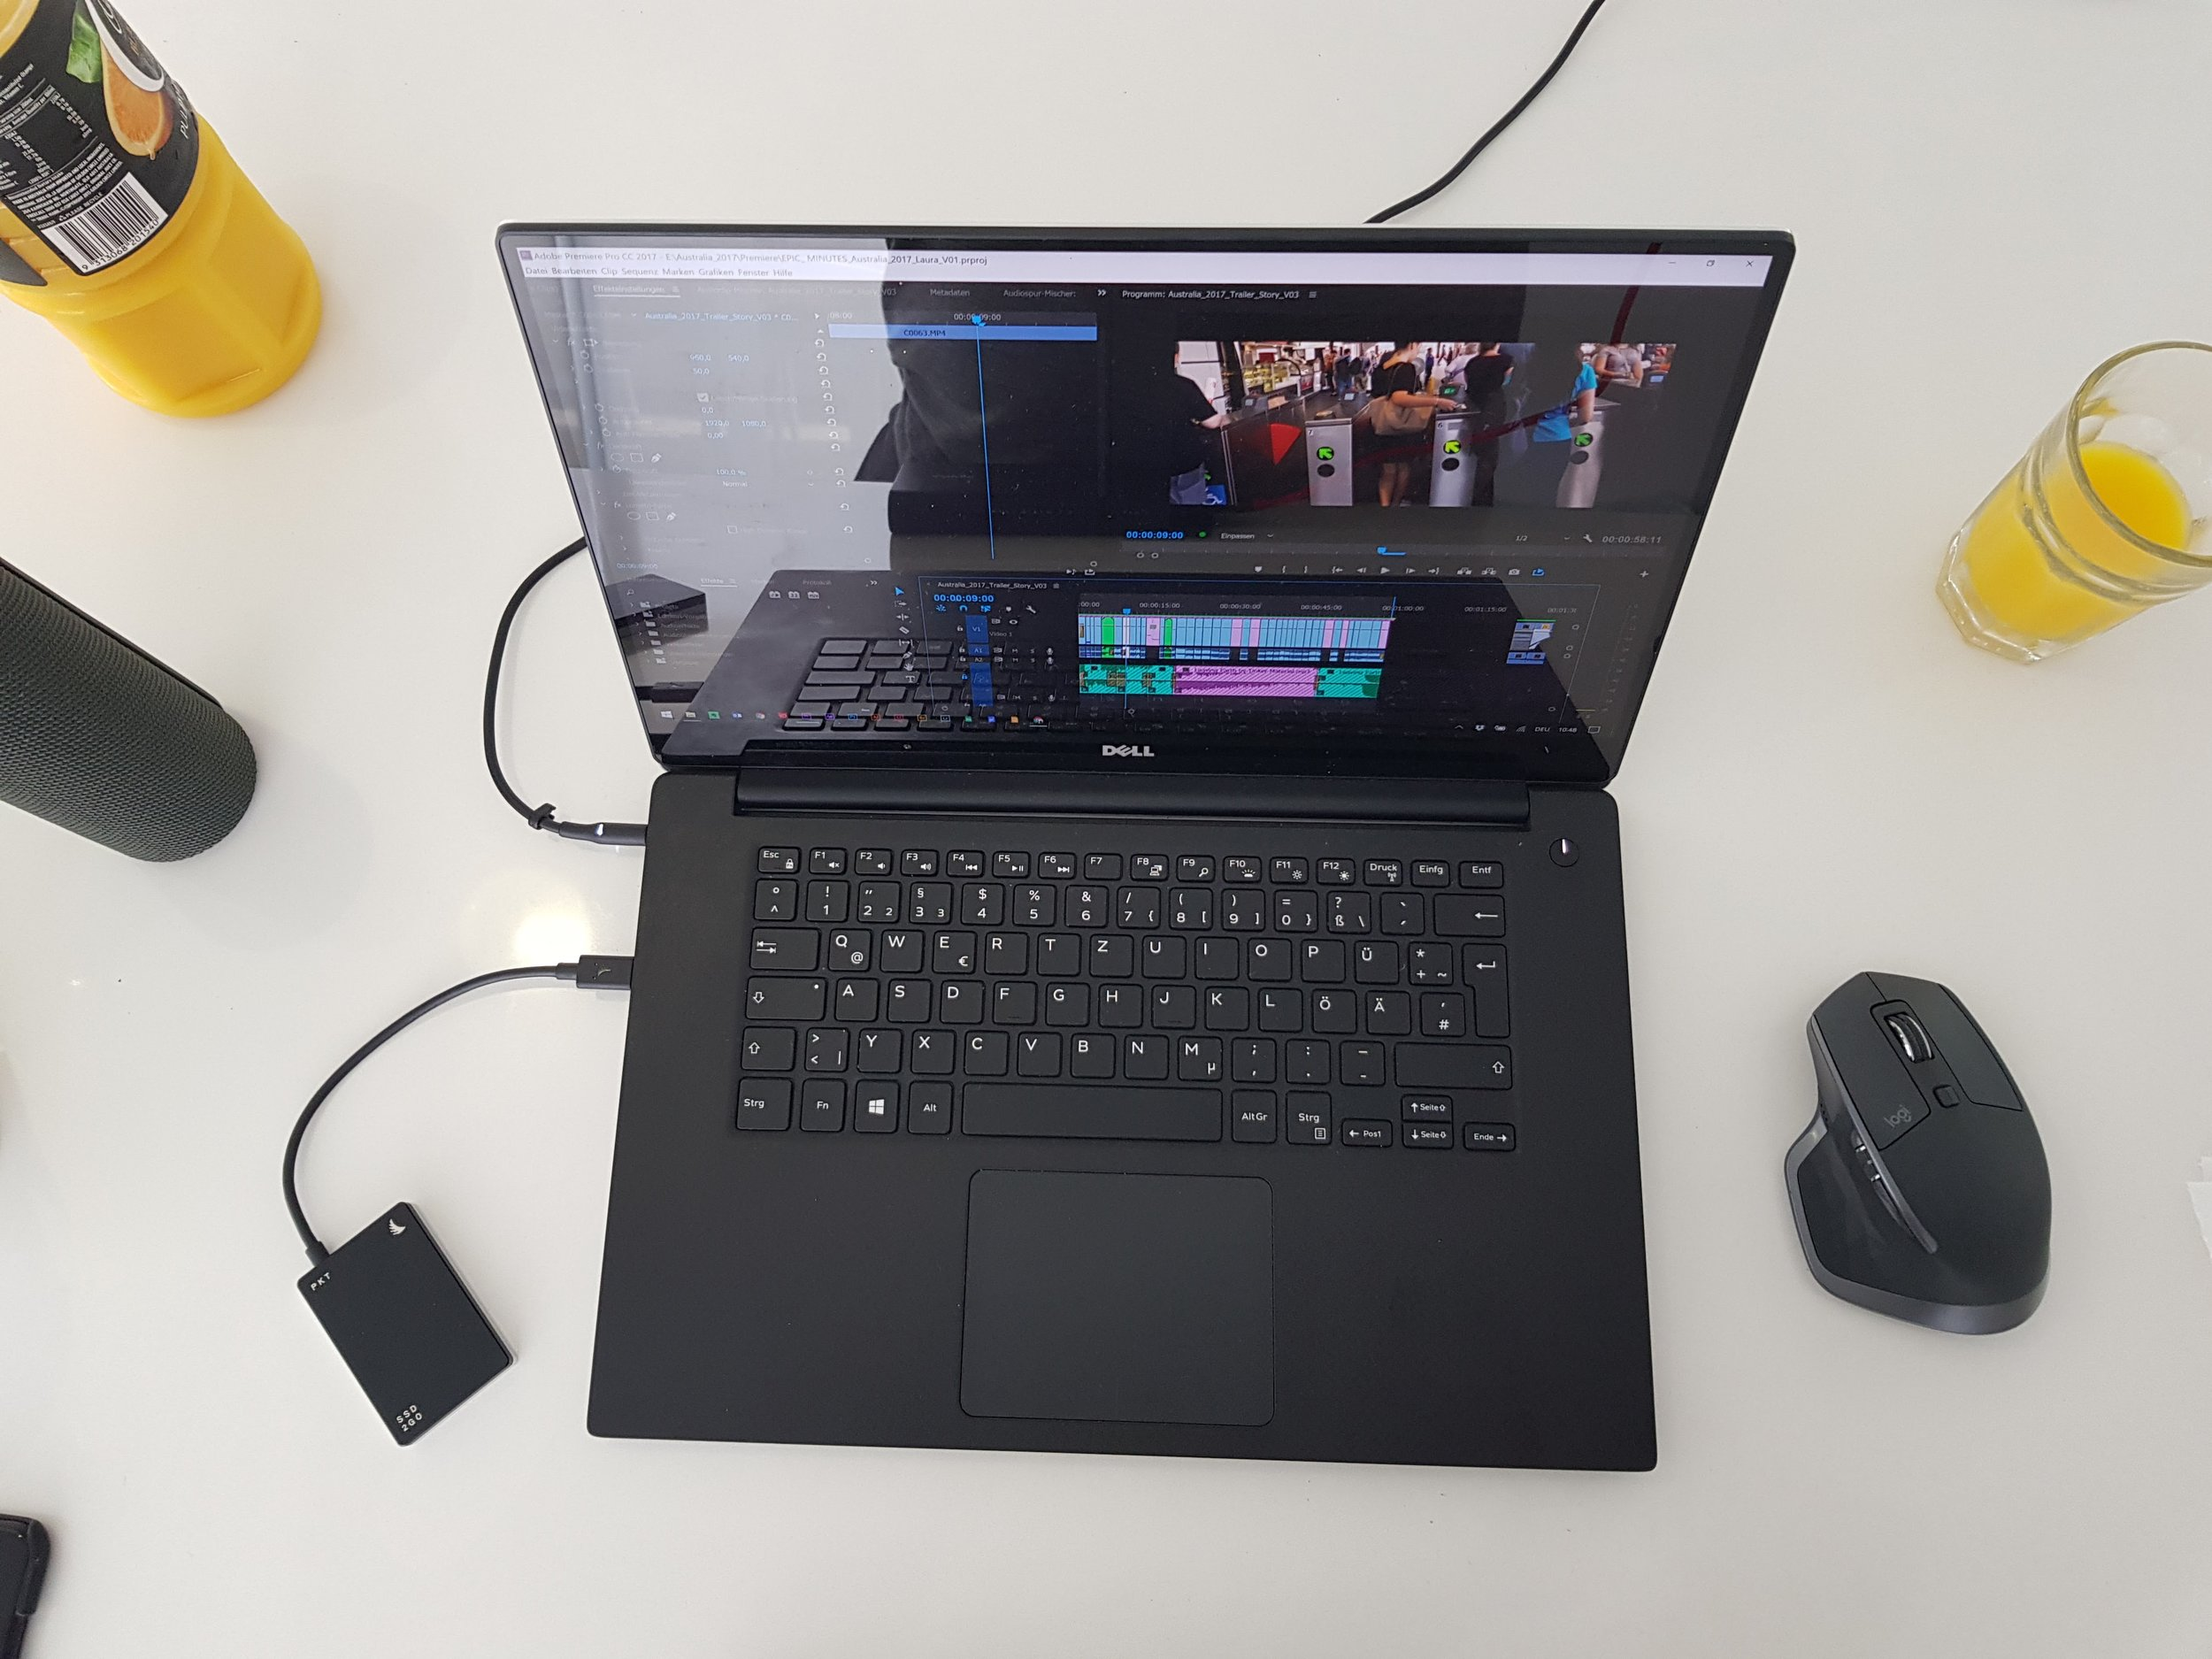 Mobile Editing Station - Dell XPS & Angelbird SSD for fast support